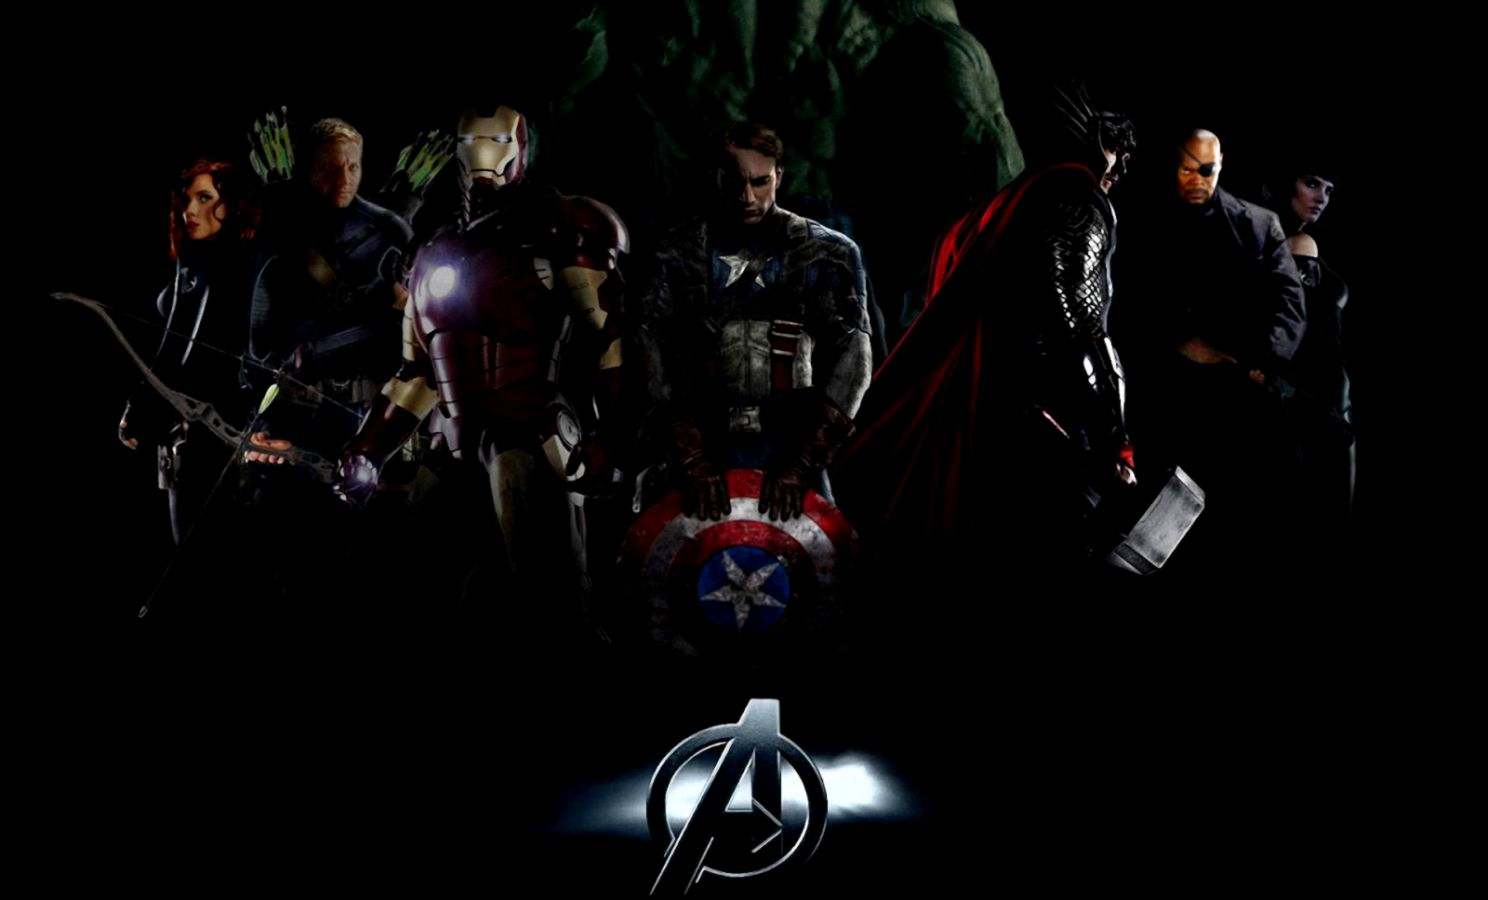 avengers hd wallpaper wallpapers quality